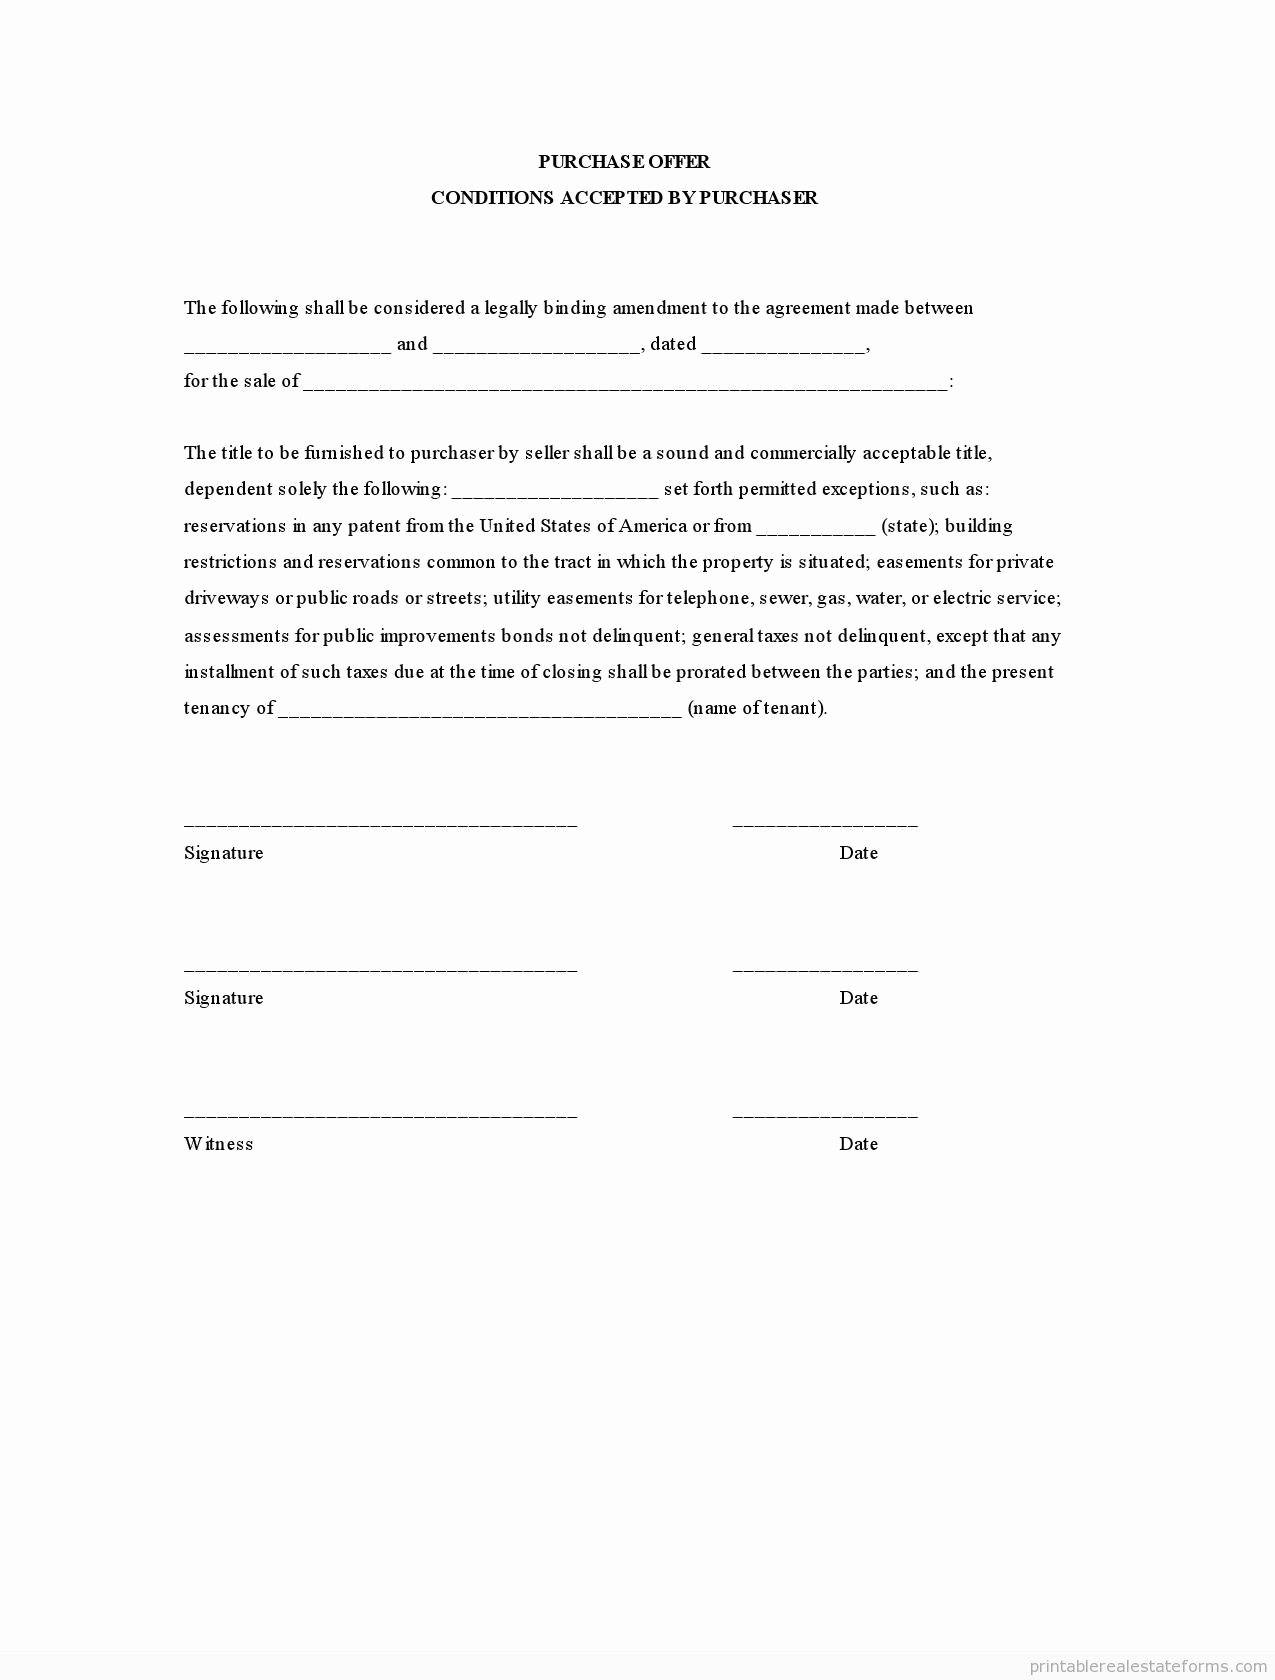 Utility Easement Agreement Template Inspirational Purchase Fer Conditions Accepted by Purchaser Basic